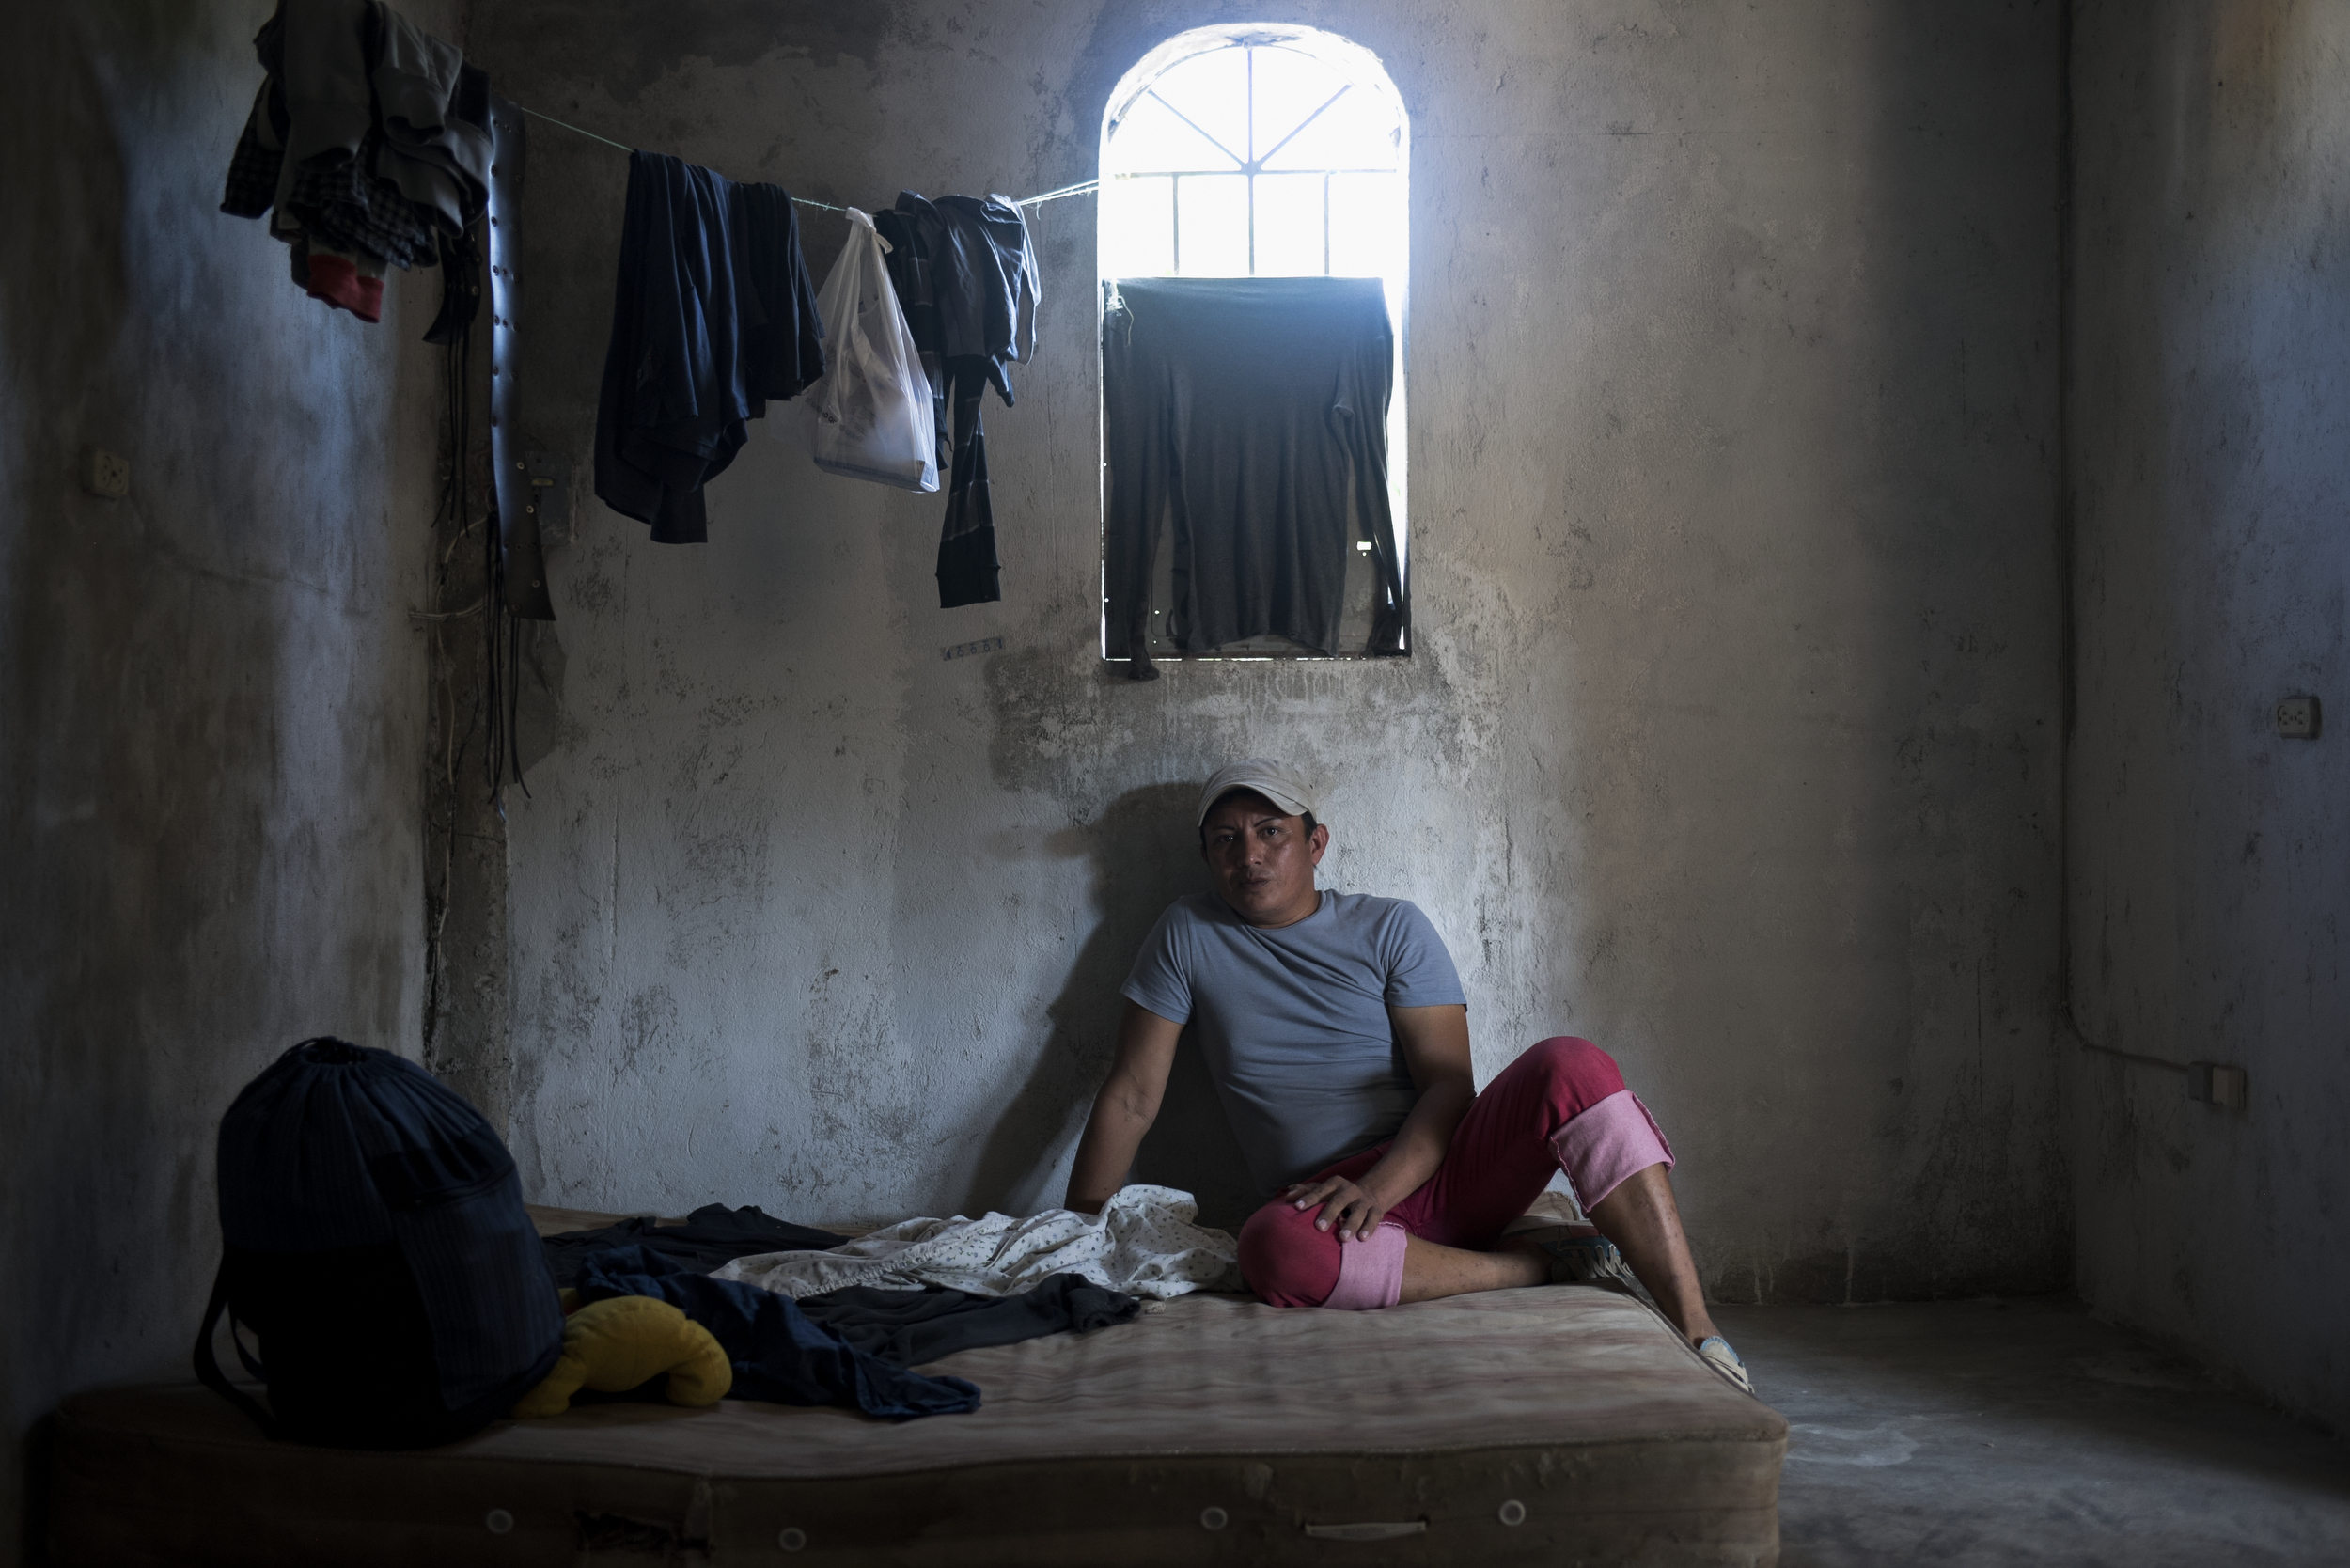 Danilo Munguia, 34, from El Salvador, in the one room house he shares with three other people. Danilo is transgender but had all of his clothing robbed while staying at a shelter in Tapachula. Finding a safe place to sleep is a daily challenge. He is sharing this small house with three other migrants from El Salvador (a mother and son and one other woman), but he often feels unsafe as one of the women has a violent boyfriend who comes to the house for days at a time.